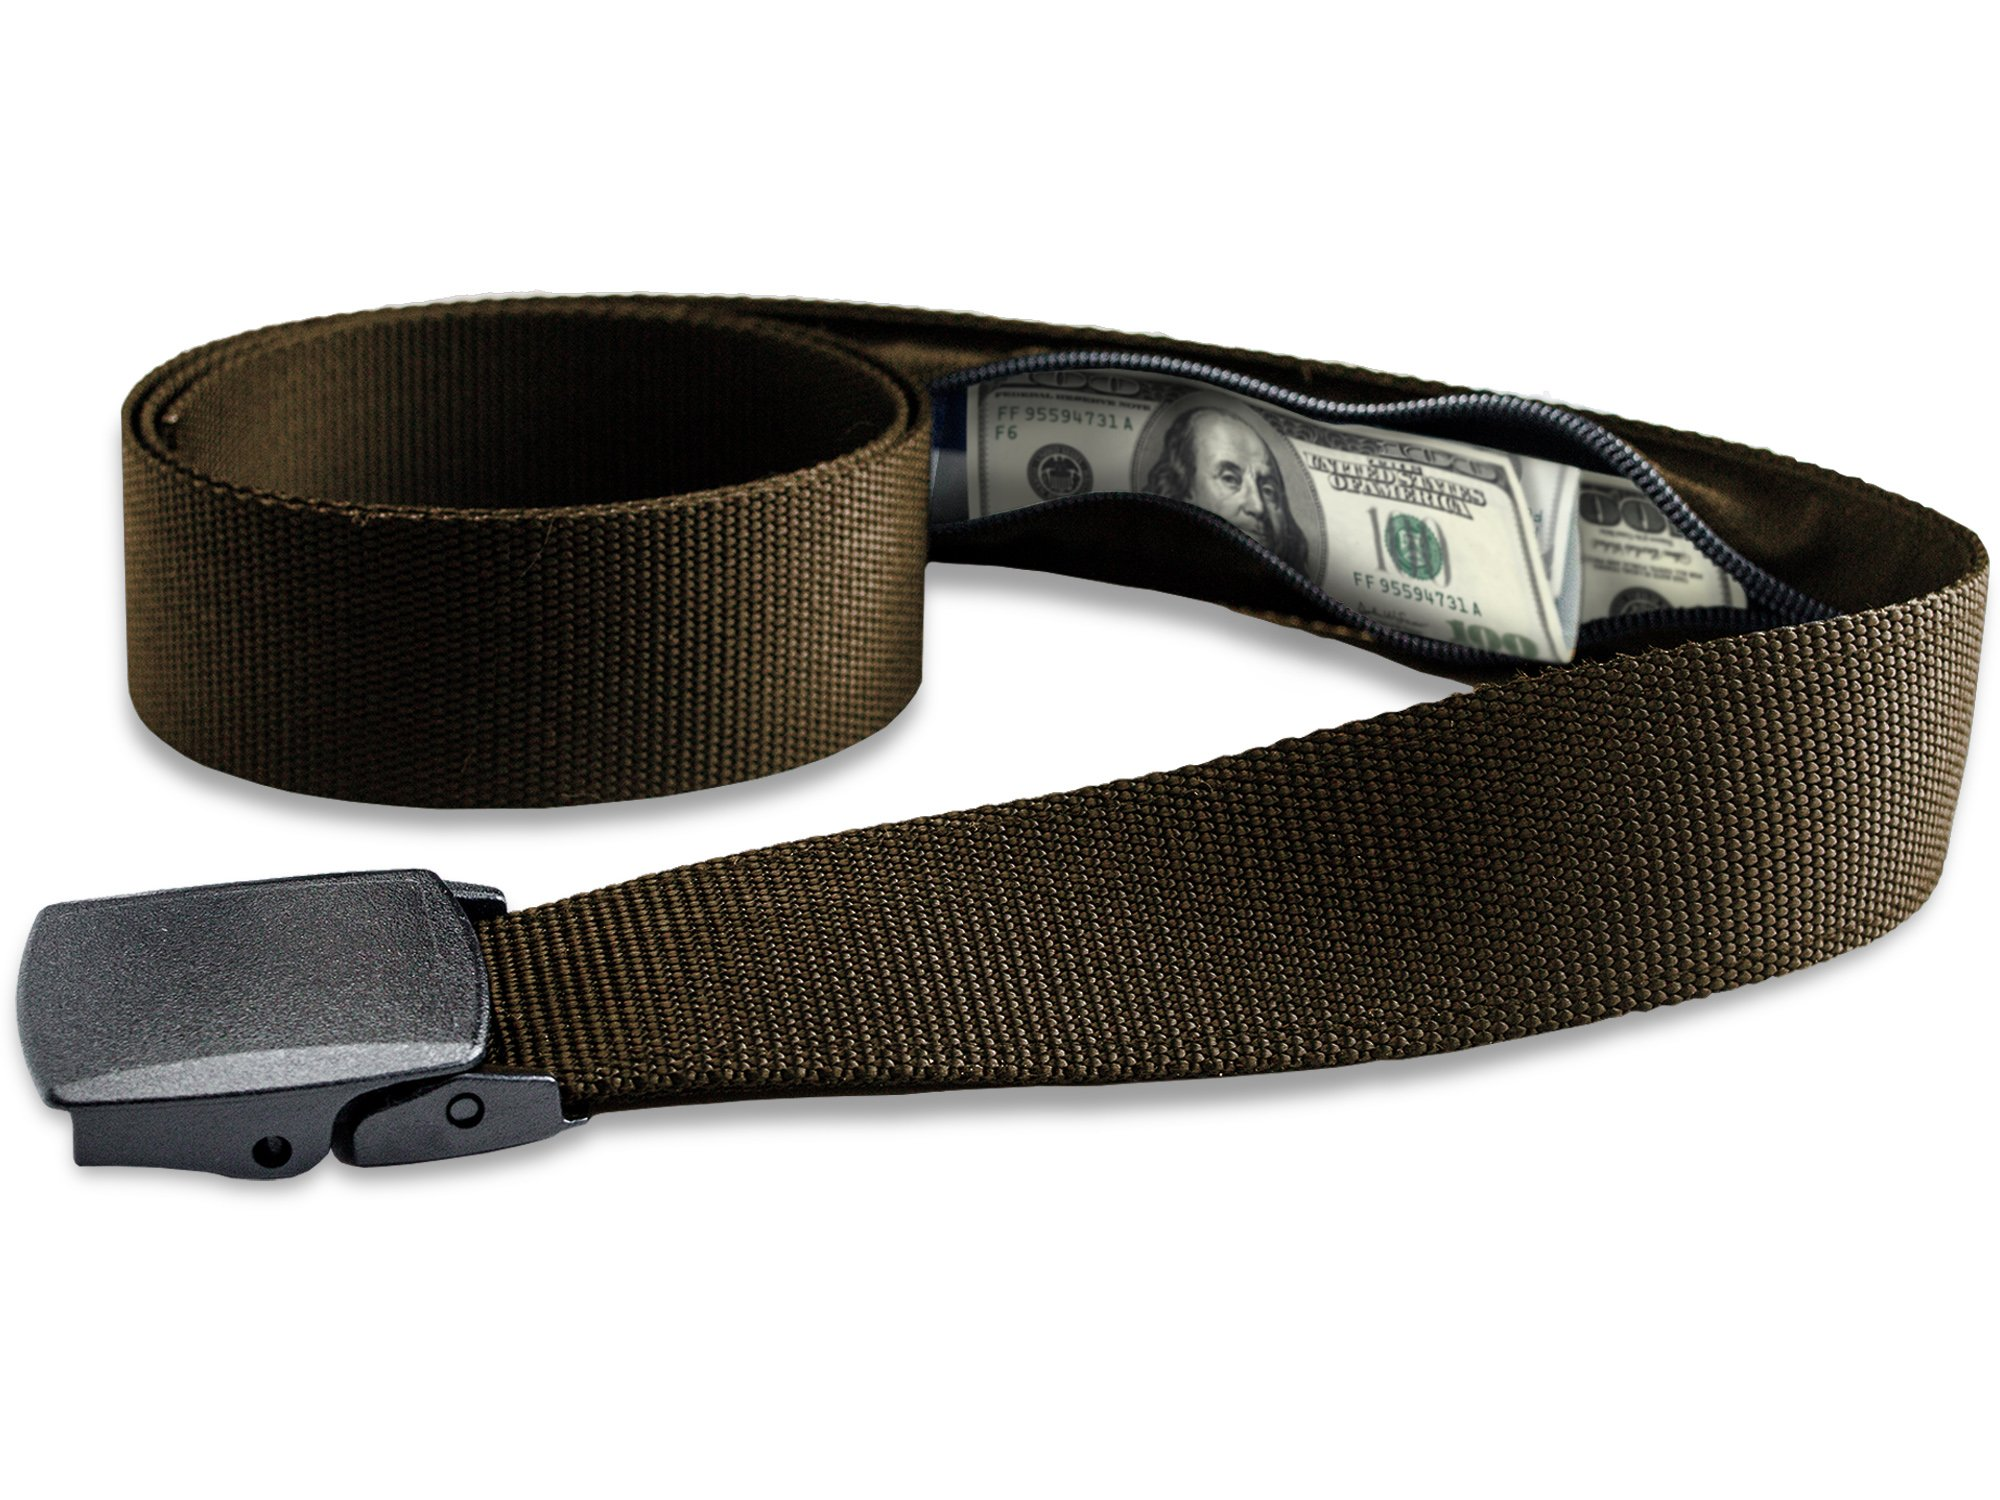 Travel Security Belt with Hidden Money Pocket Brown - Cashsafe Anti-Theft Wallet - Non-Metal Buckle by RoomierLife